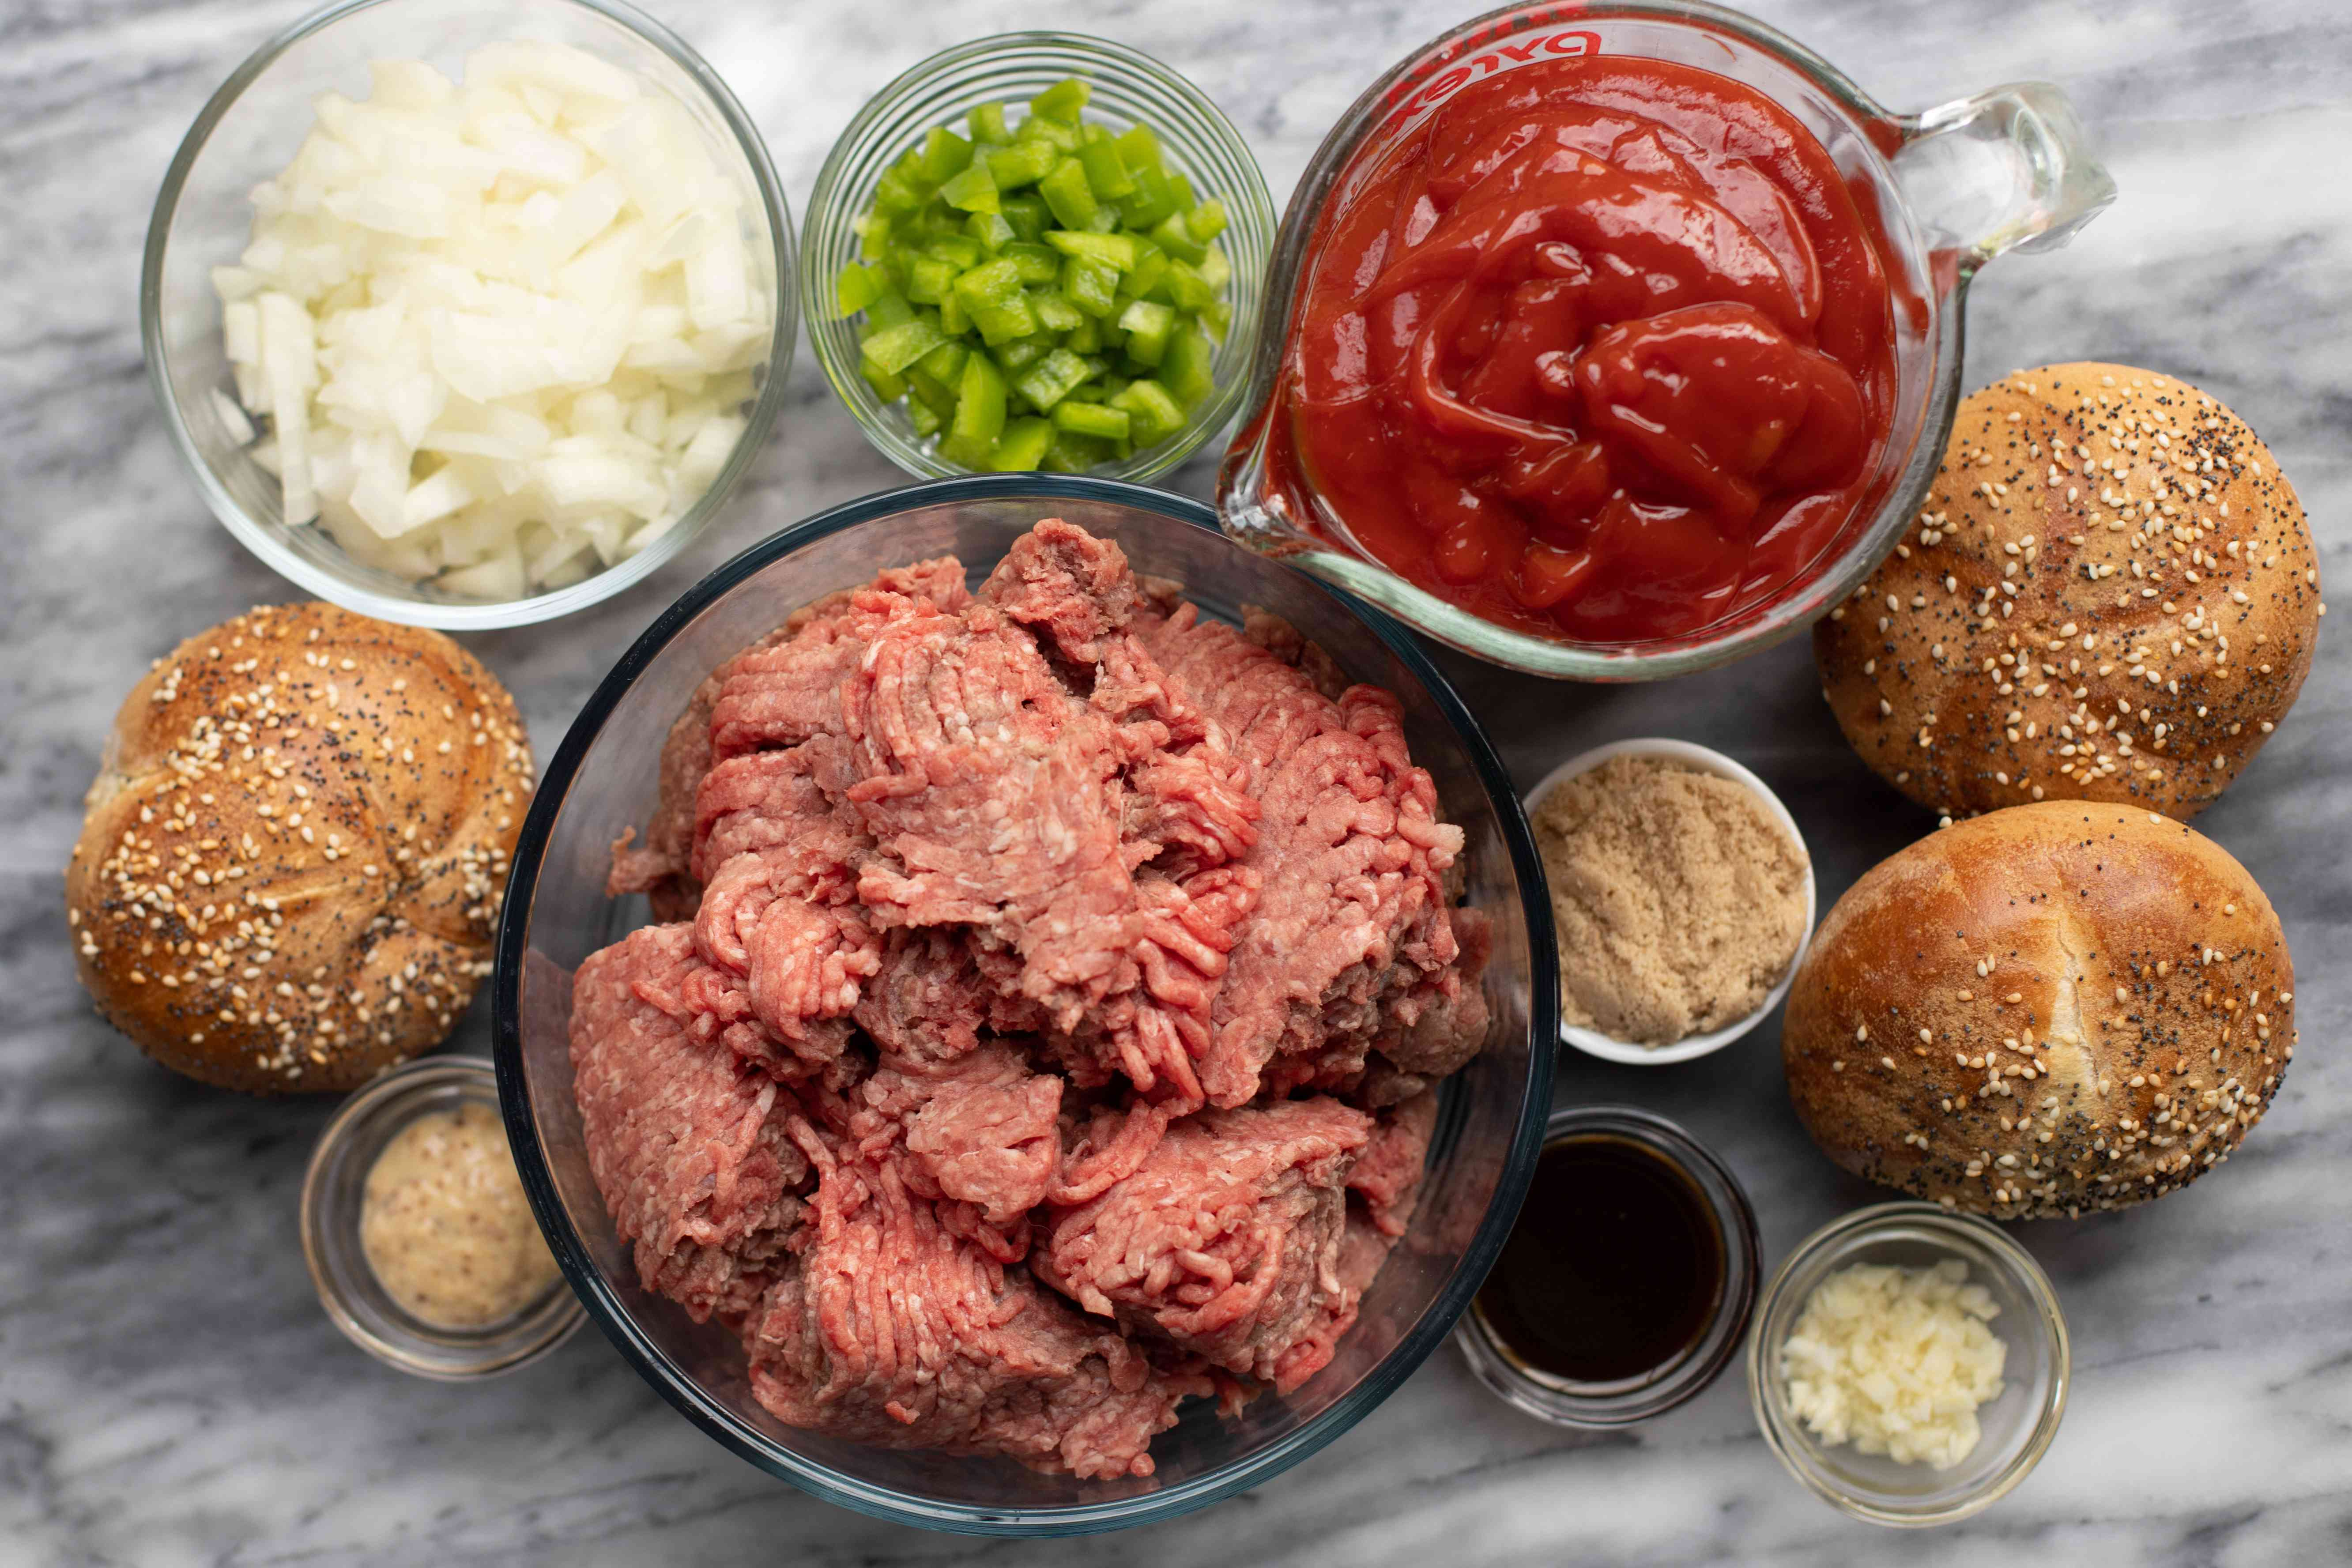 ingredients for instant pot sloppy joes